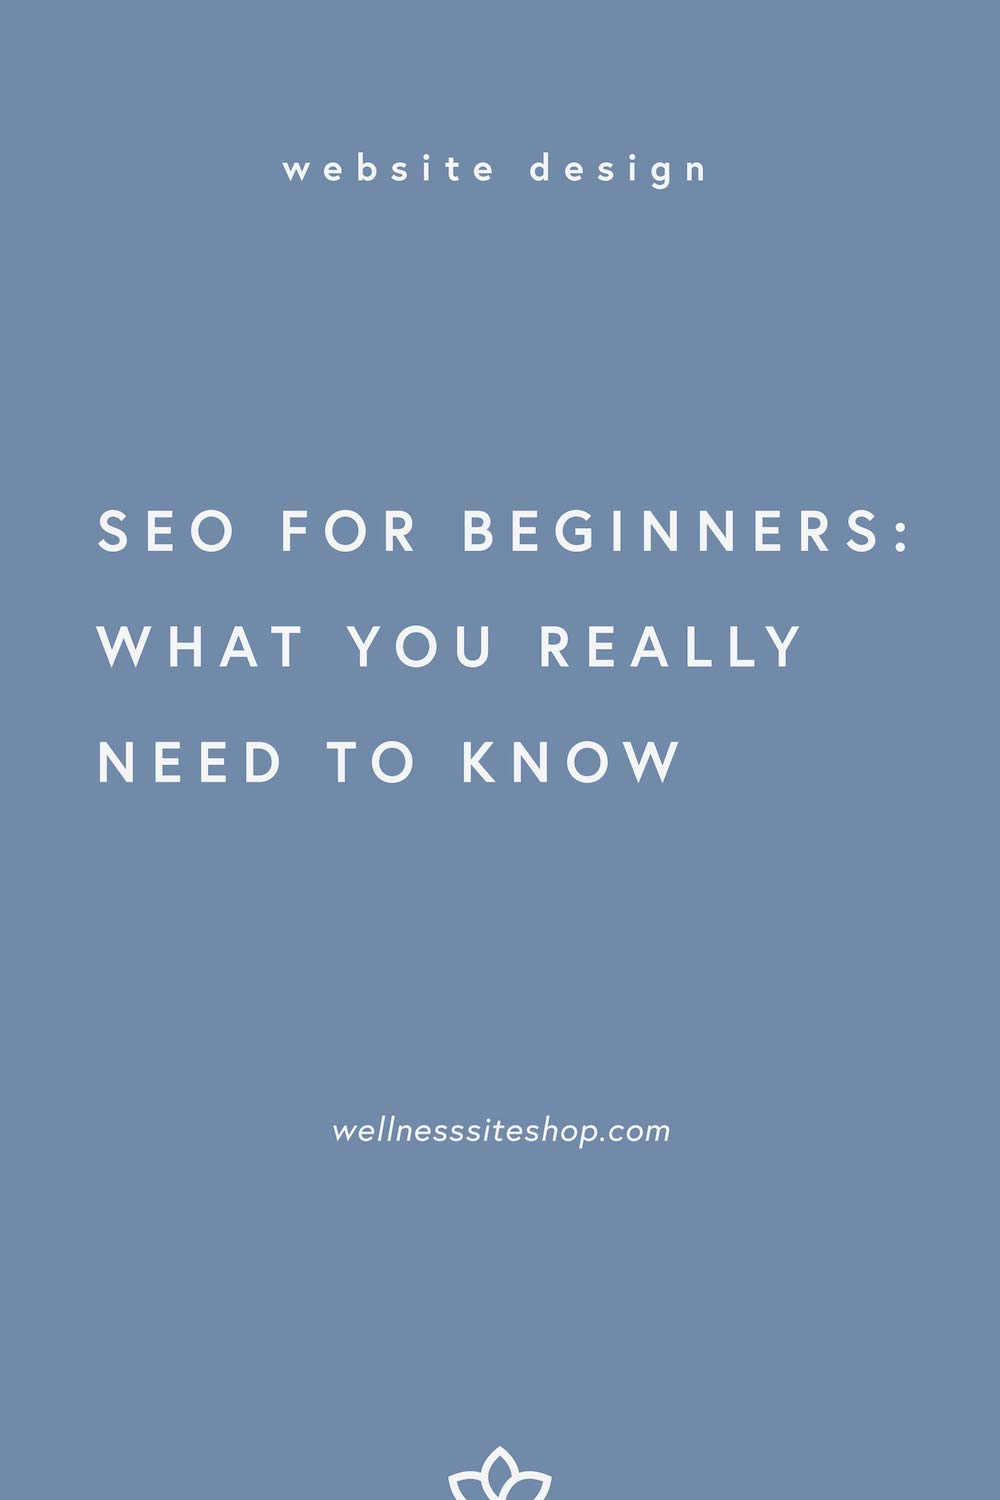 SEO for beginners: what you really need to know.jpg